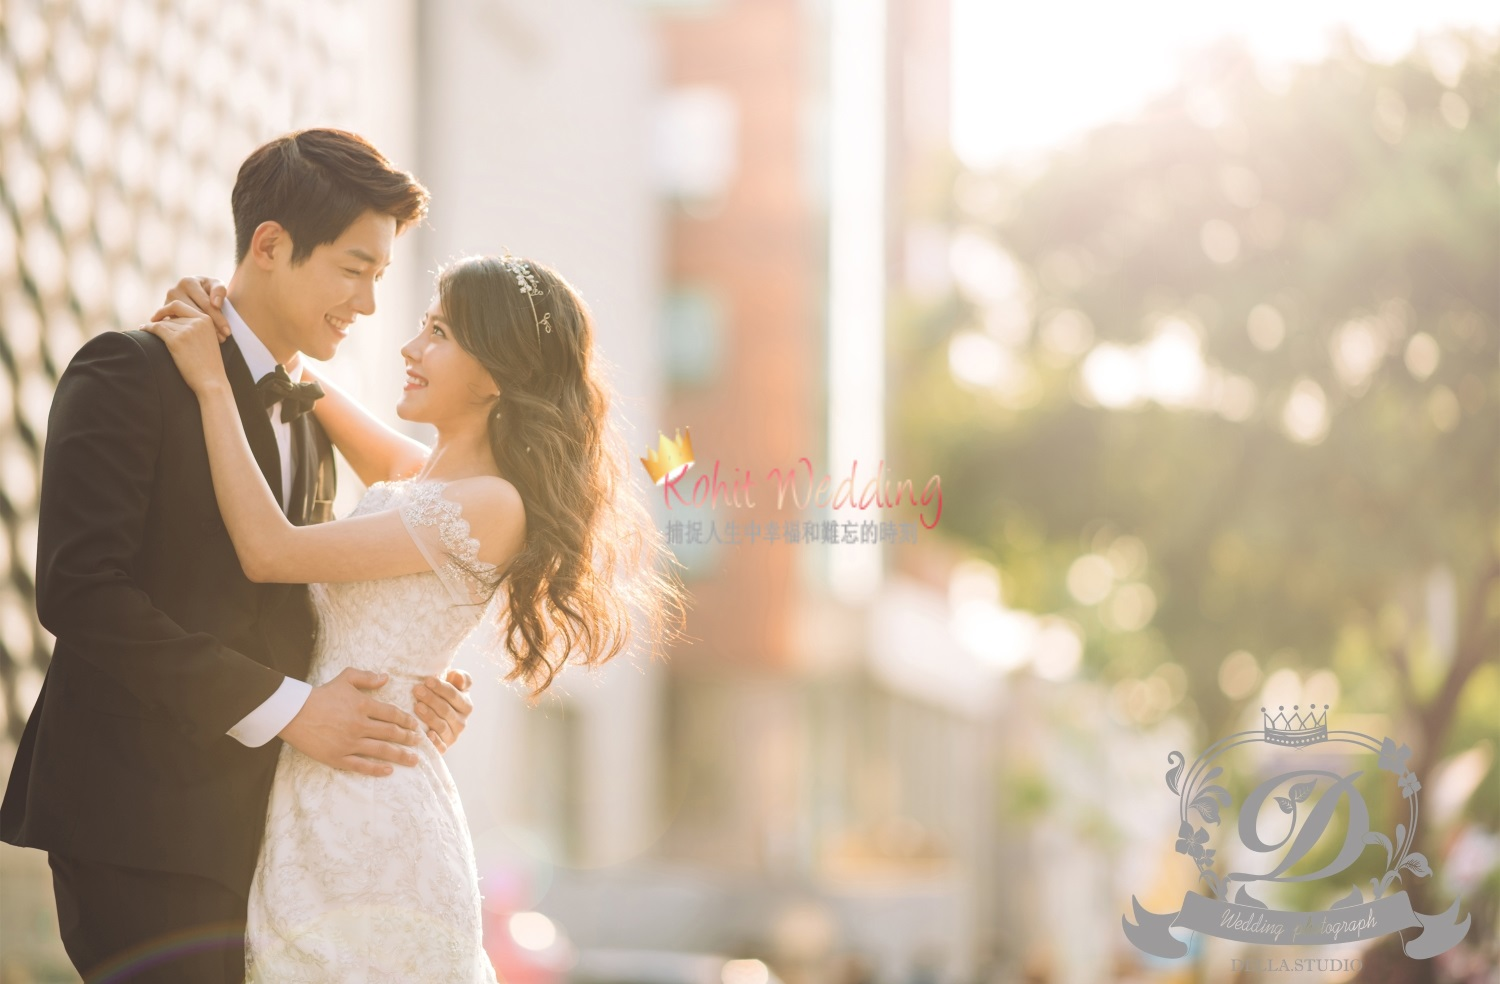 Korea Pre Wedding Kohit Wedding 38